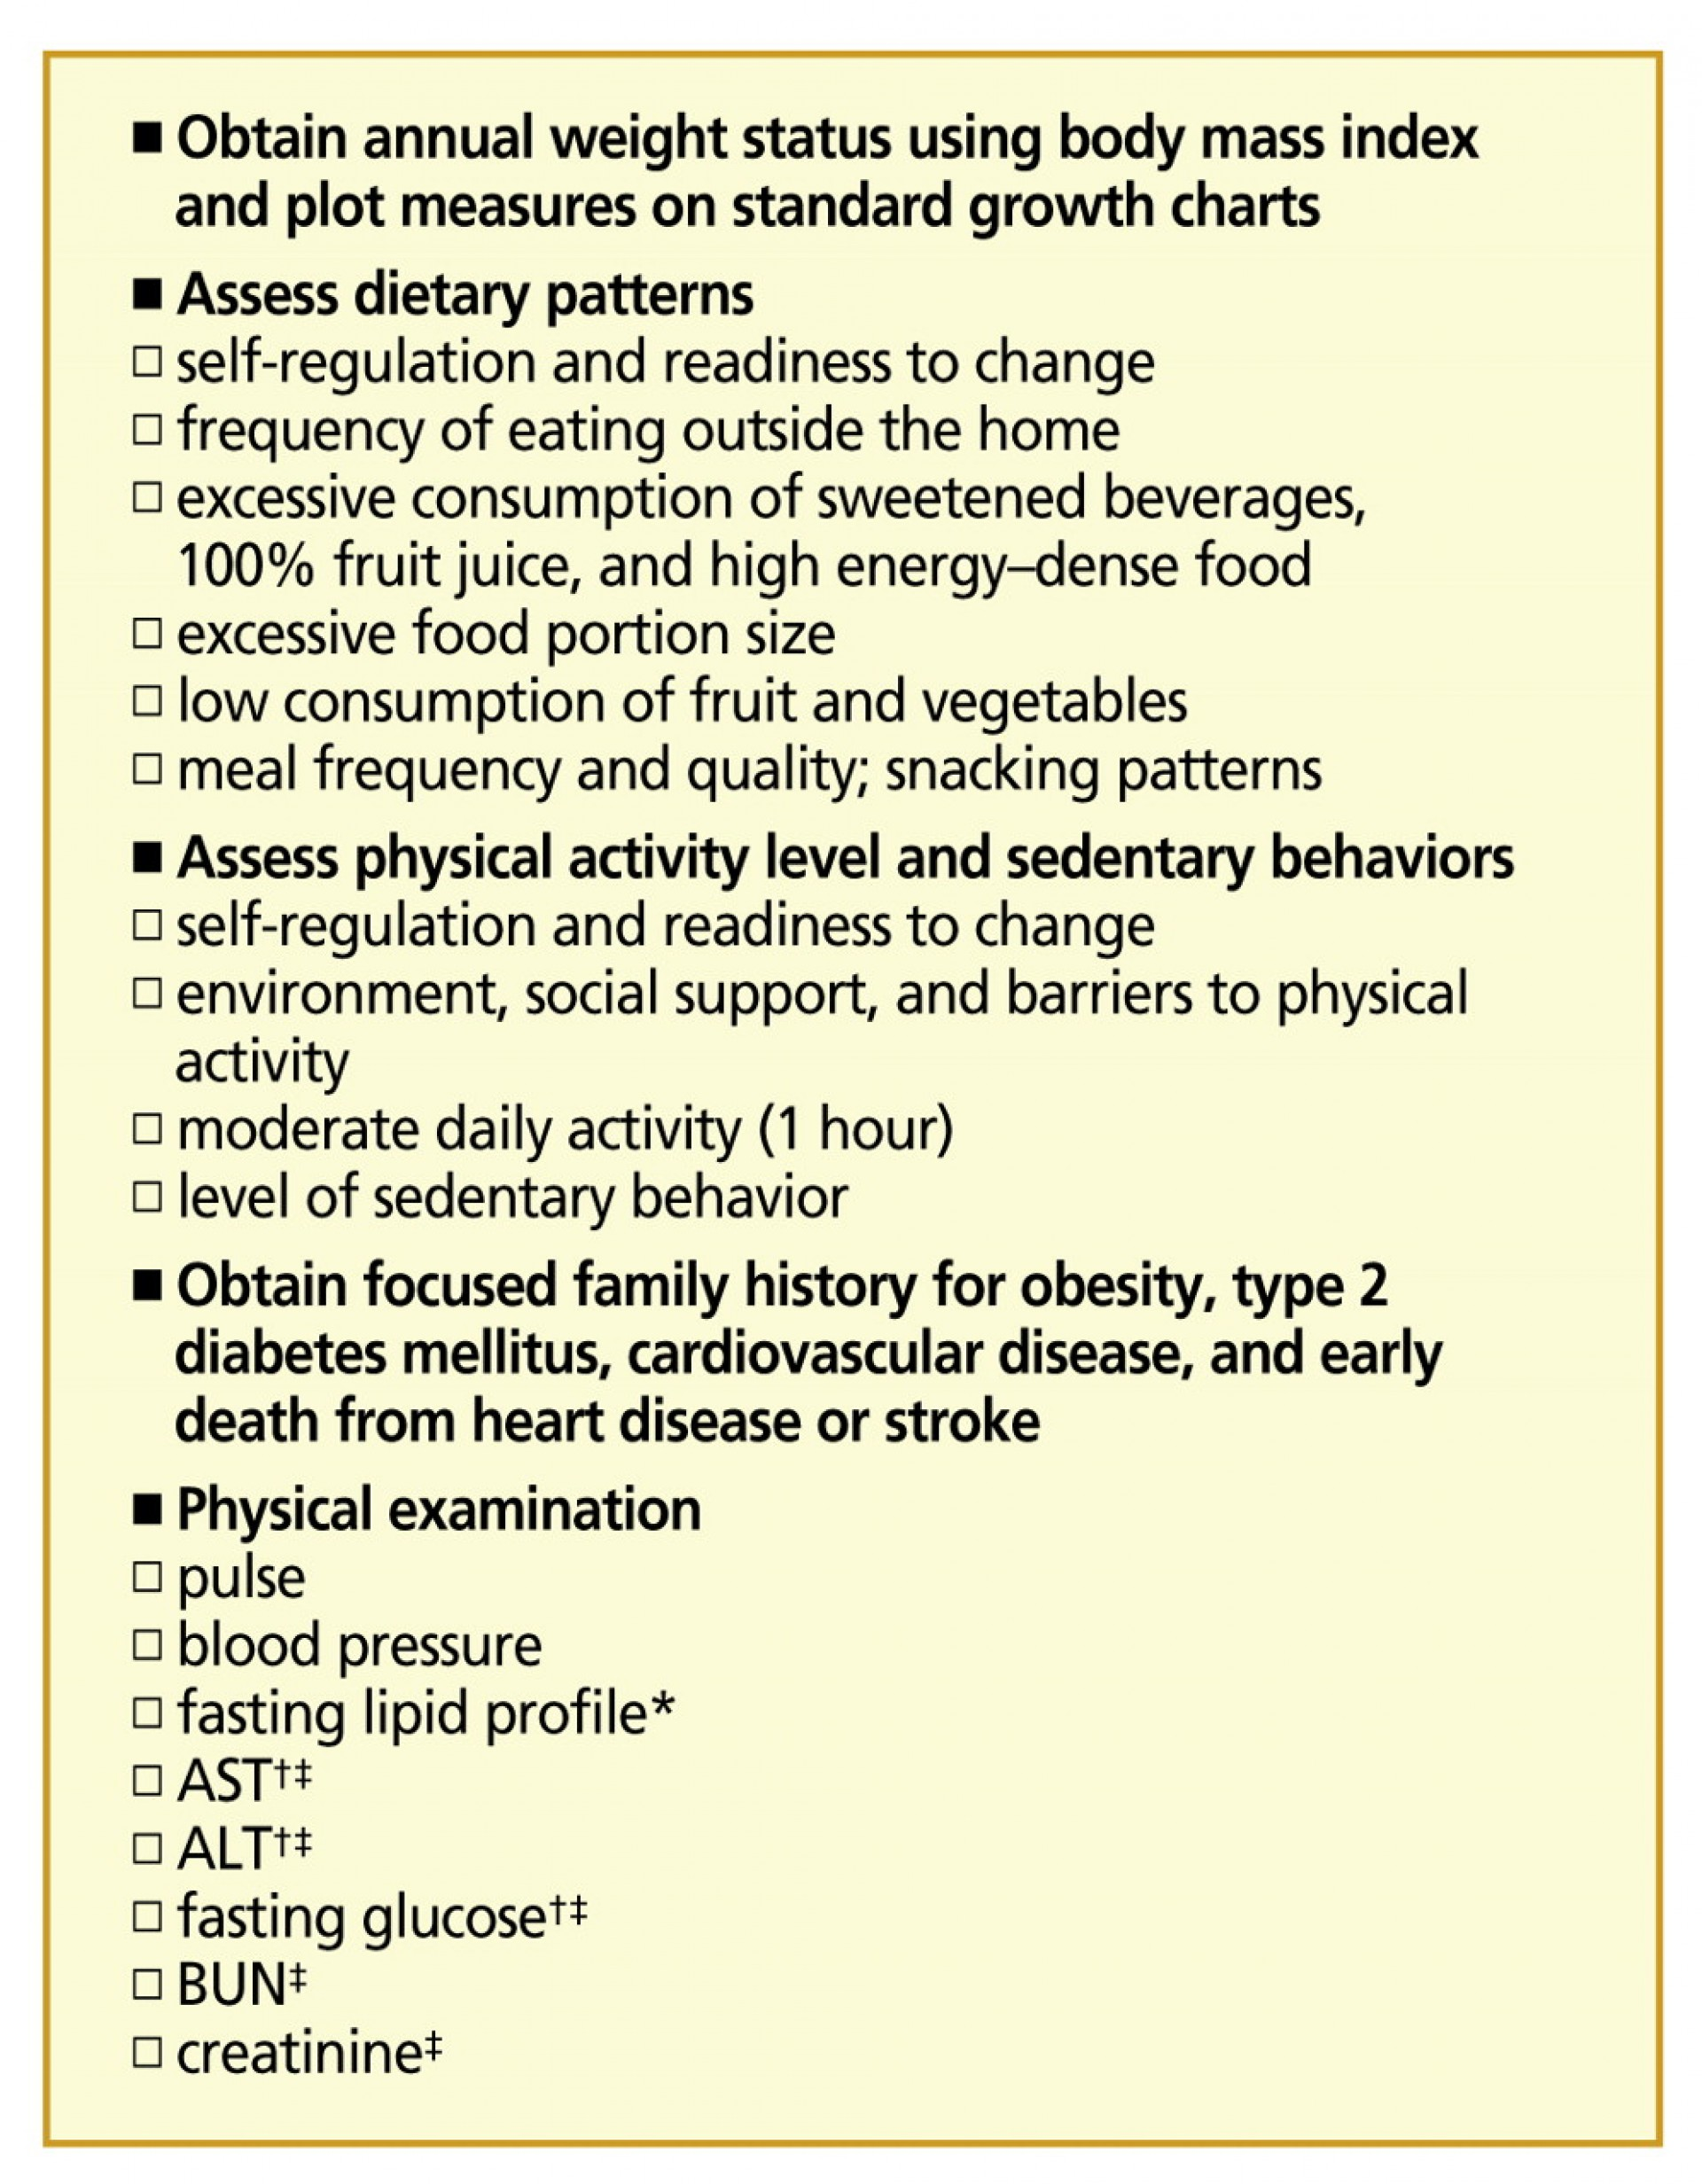 017 Research Paper Childhood Obesity Papers Unusual Thesis Statement Articles Abstract 1920